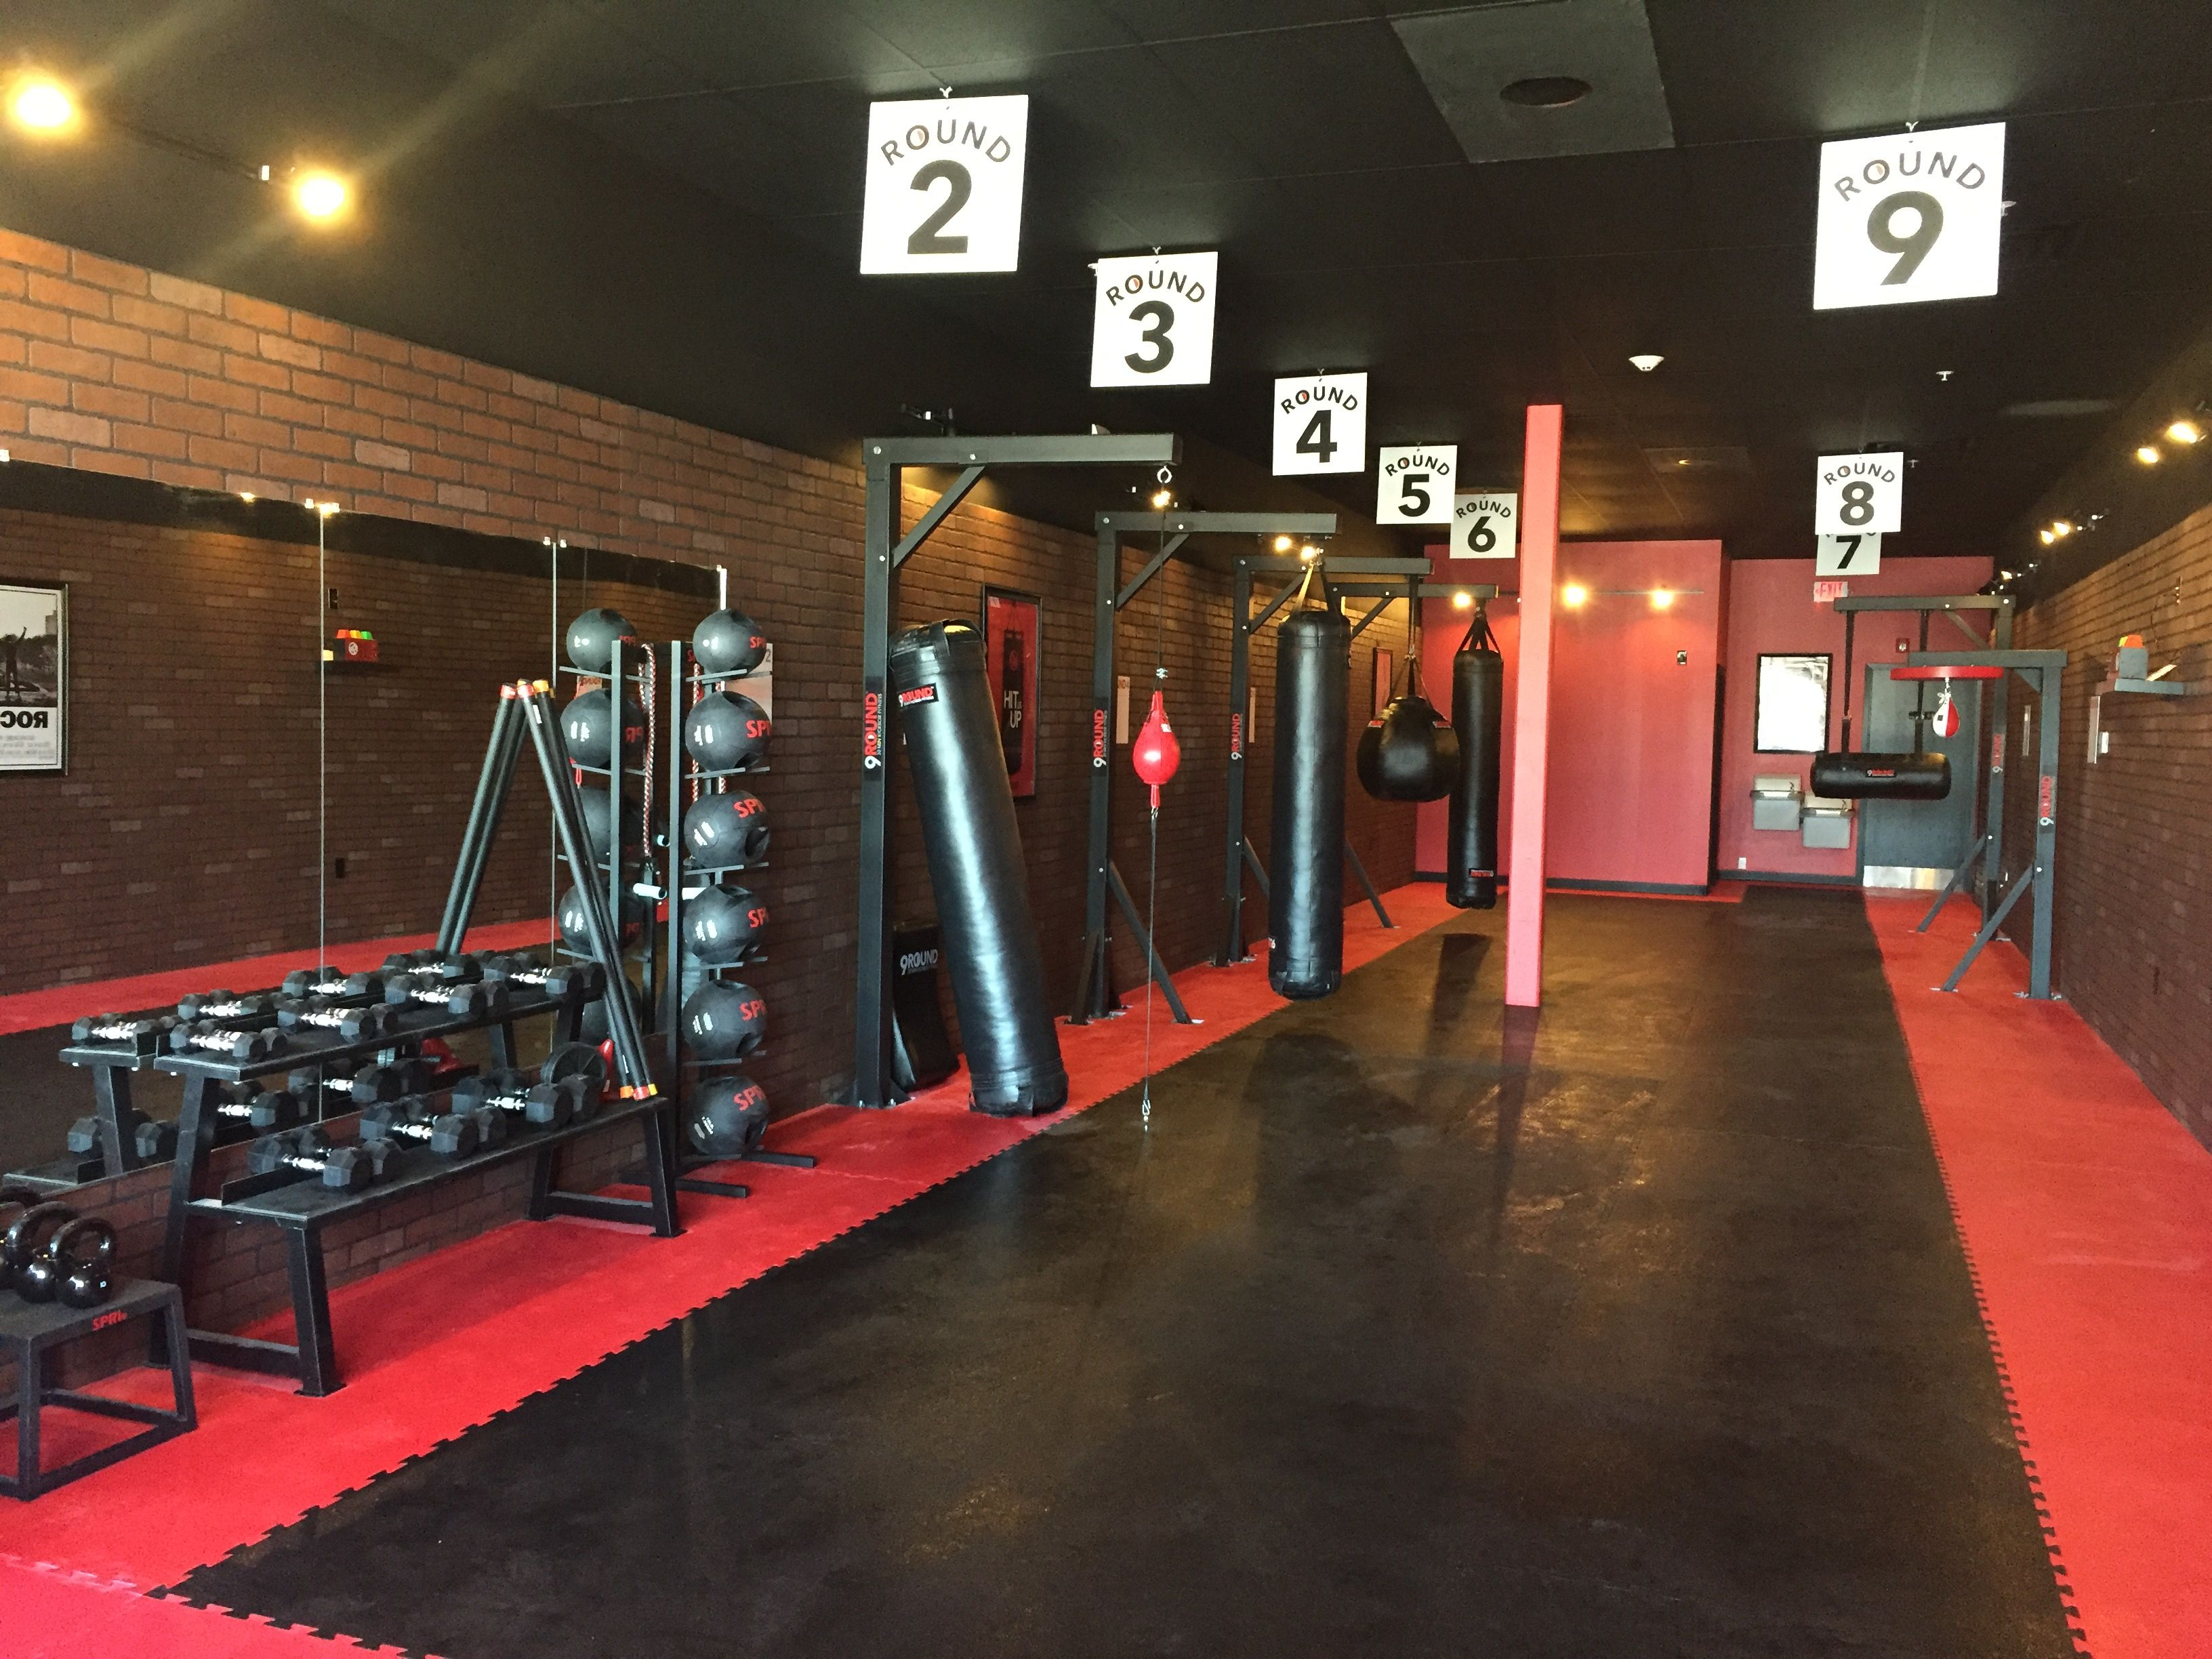 Kickboxing Classes In Epping Nh Calef Hwy Gym Fitness Center Health Club Kickboxing Gym Kickboxing Classes Kickboxing